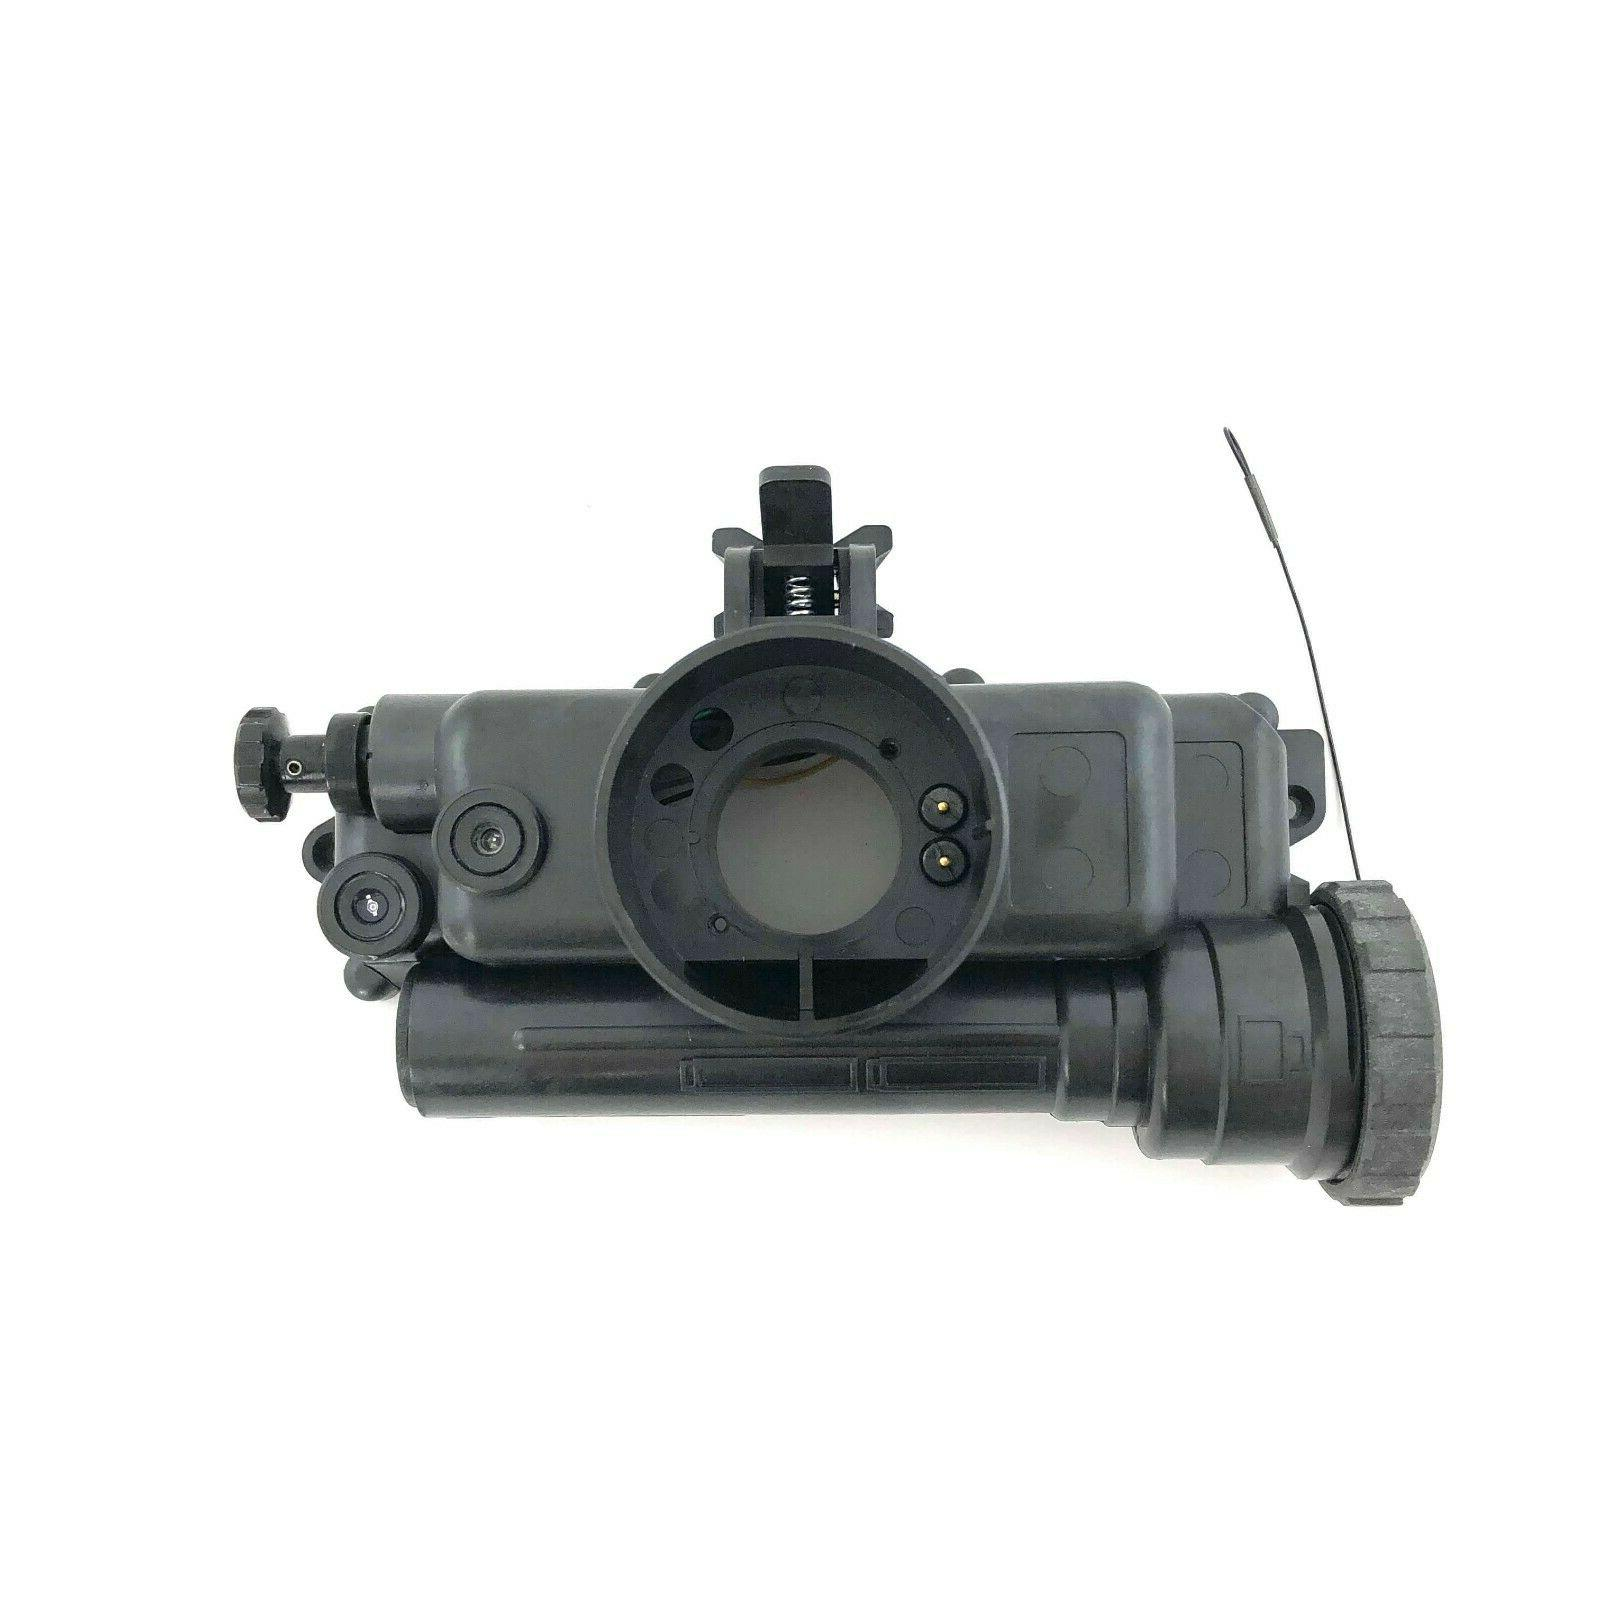 Goggles, Assembly, NVG